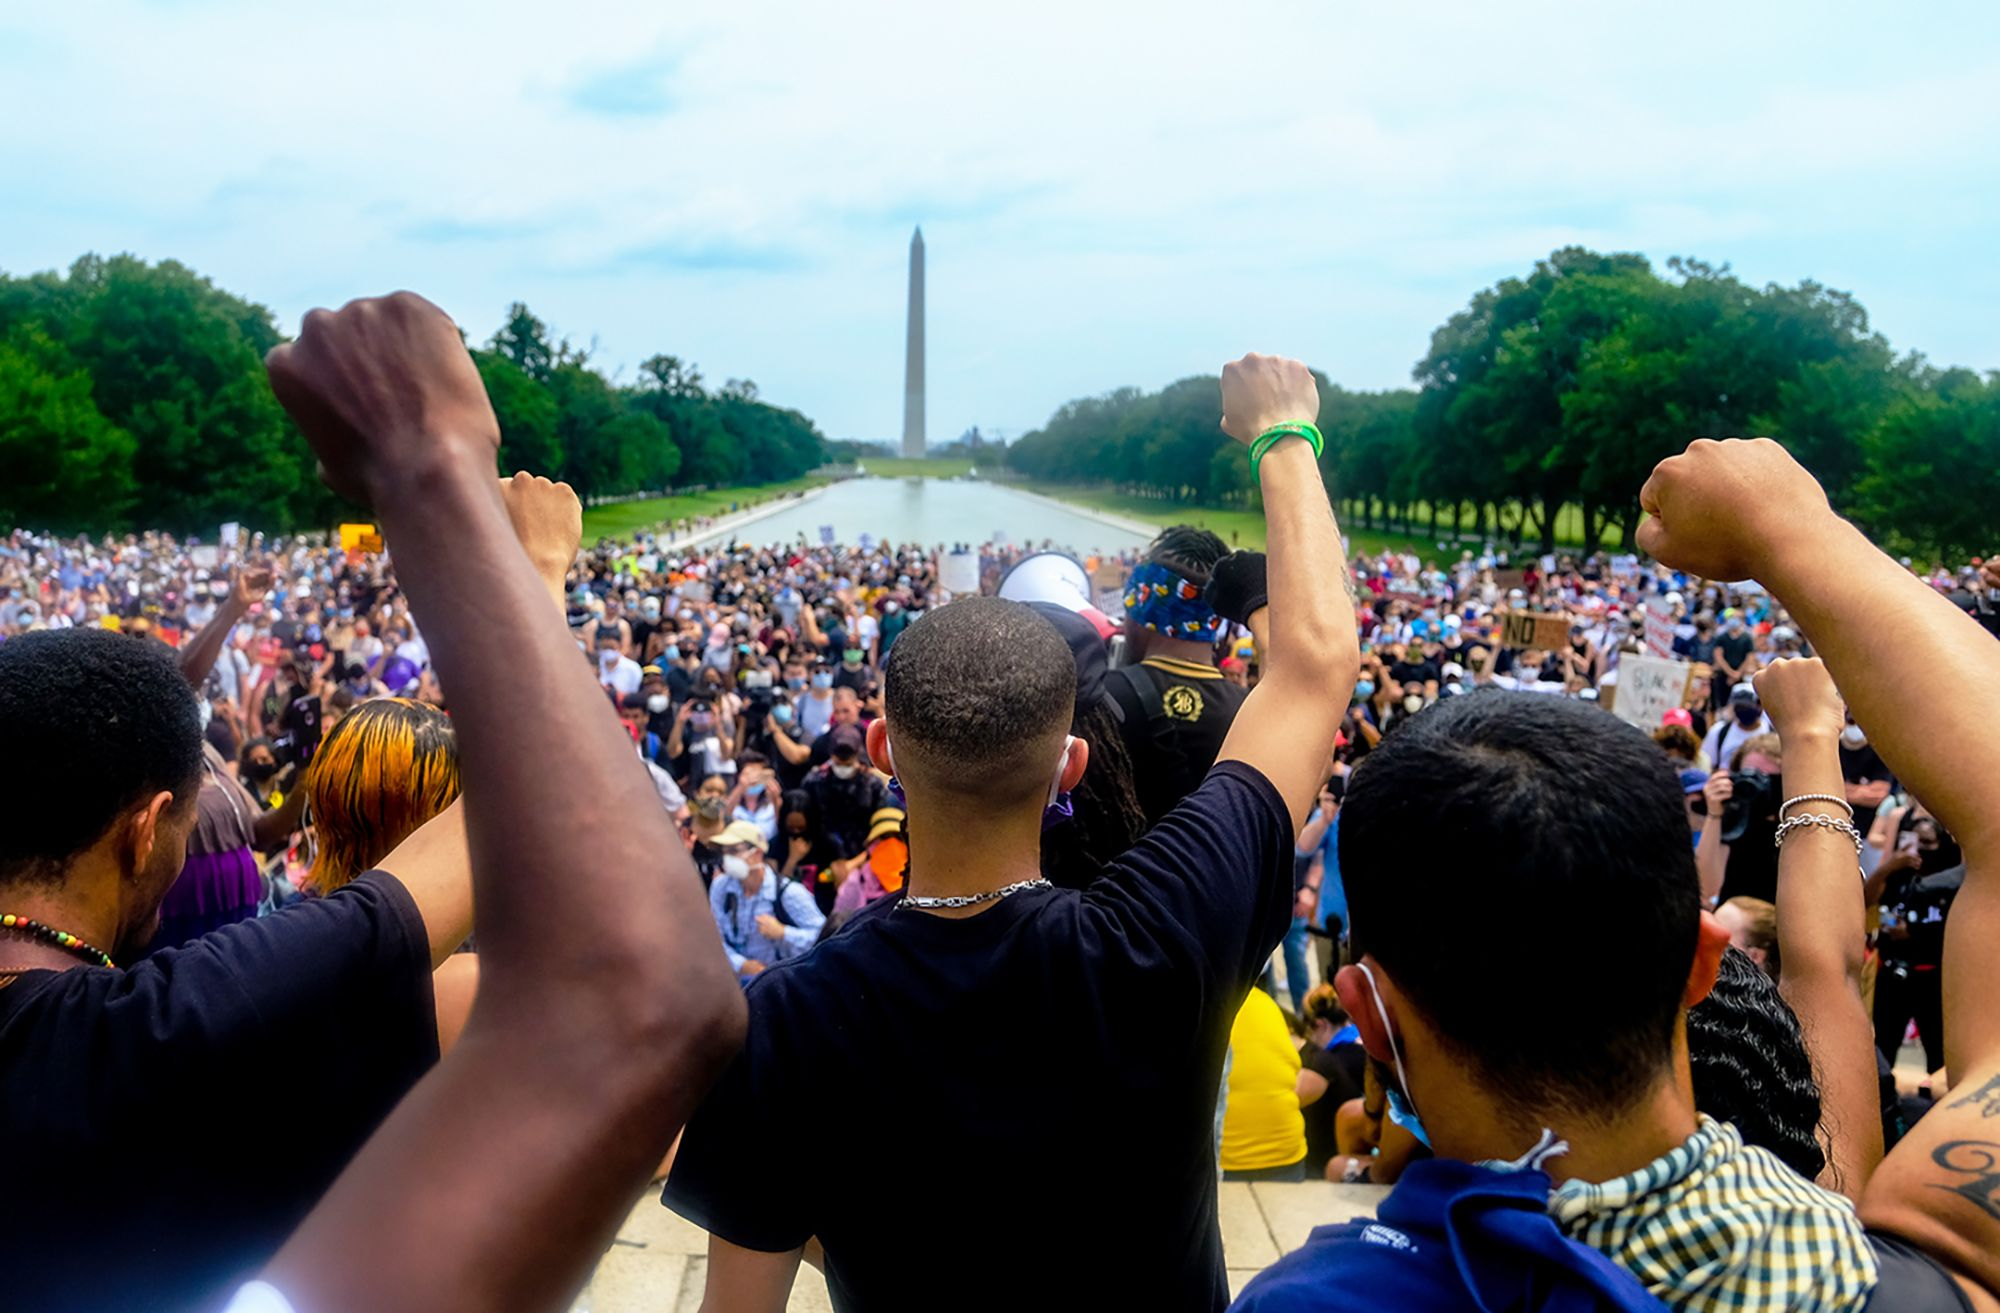 """Protesters hold the """"Black Power"""" fist during a rally at the Lincoln Memorial to protest against racism and police violence in downtown Washington, D.C. on June 6, 2020. Looking down the mall to the Washington Monument, this photo references the march on Washington of 1963 and MLK's famous """"I have a dream"""" speech. Image by Michael A. McCoy for the New York Times. United States, 2020."""